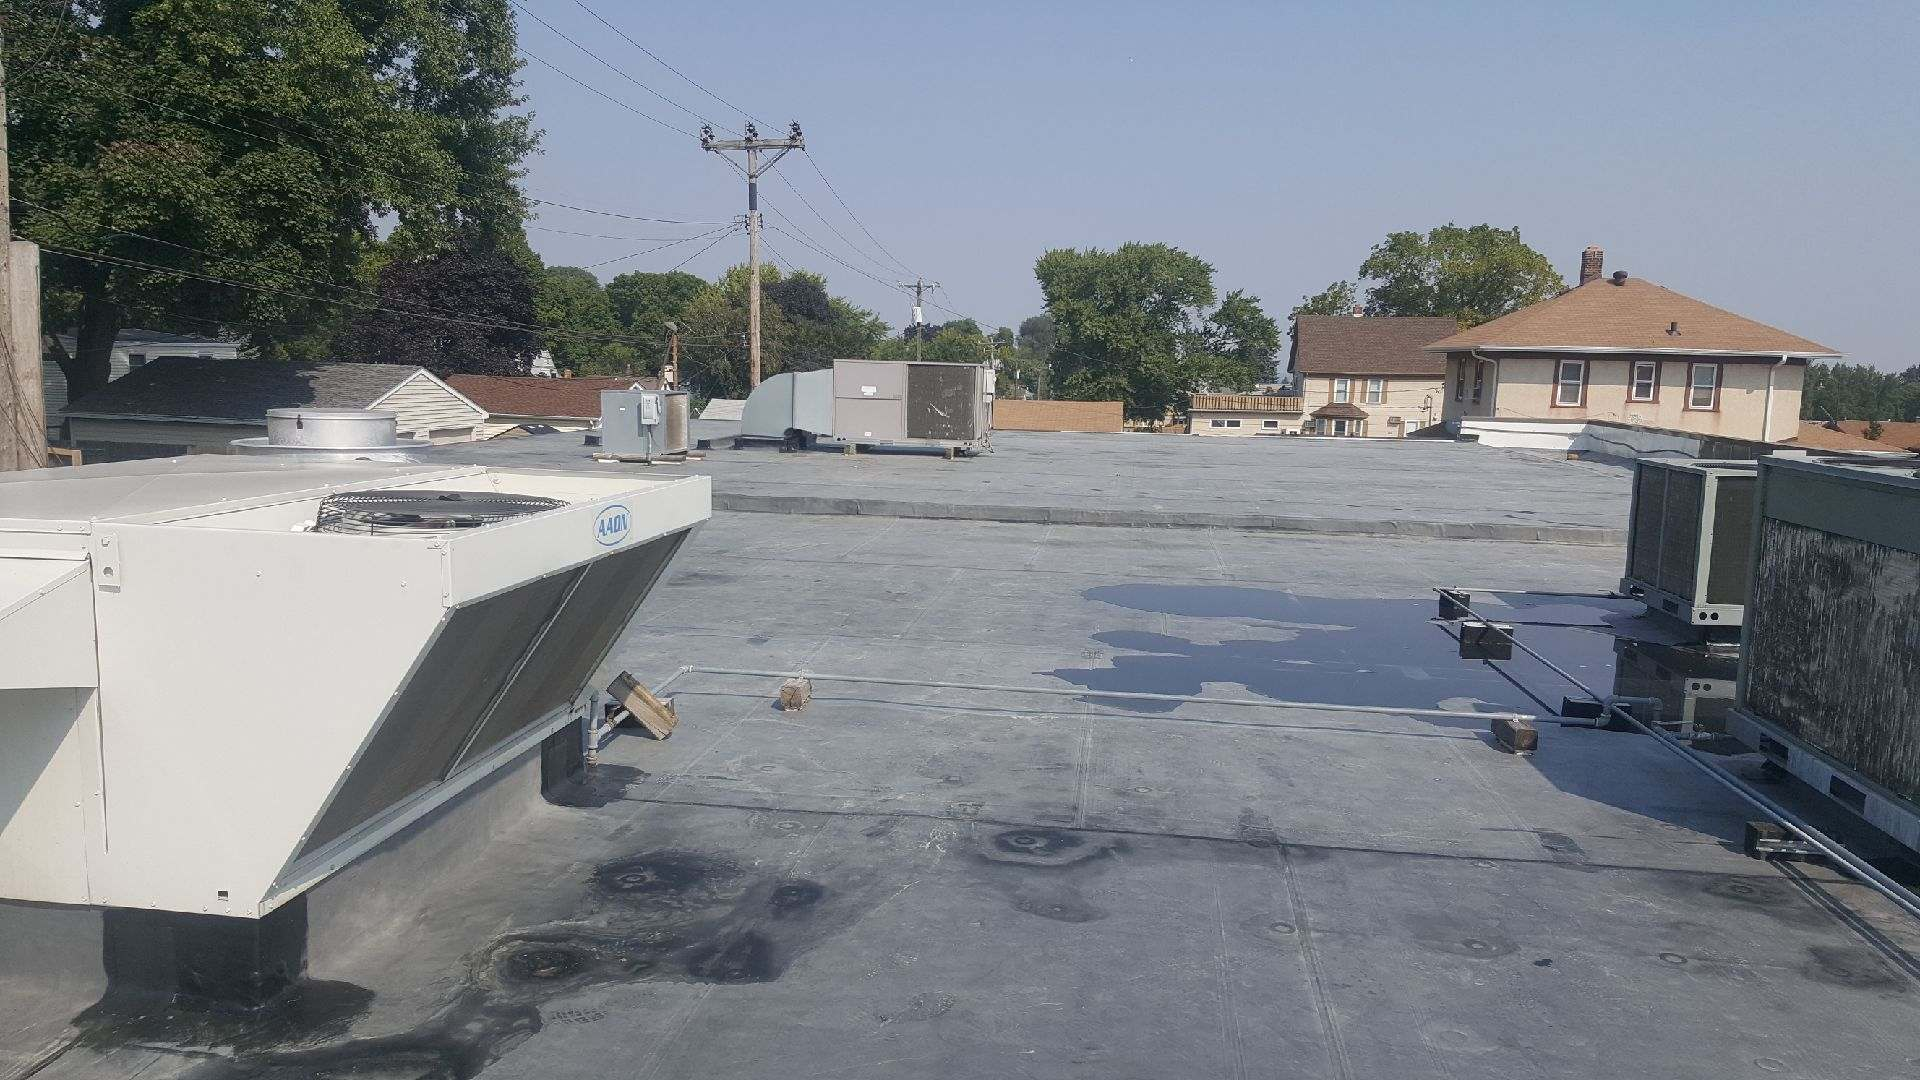 Commercial Roofing Contractor Repair Installation Minneapolis Mn Ck Roofing Construction Inc